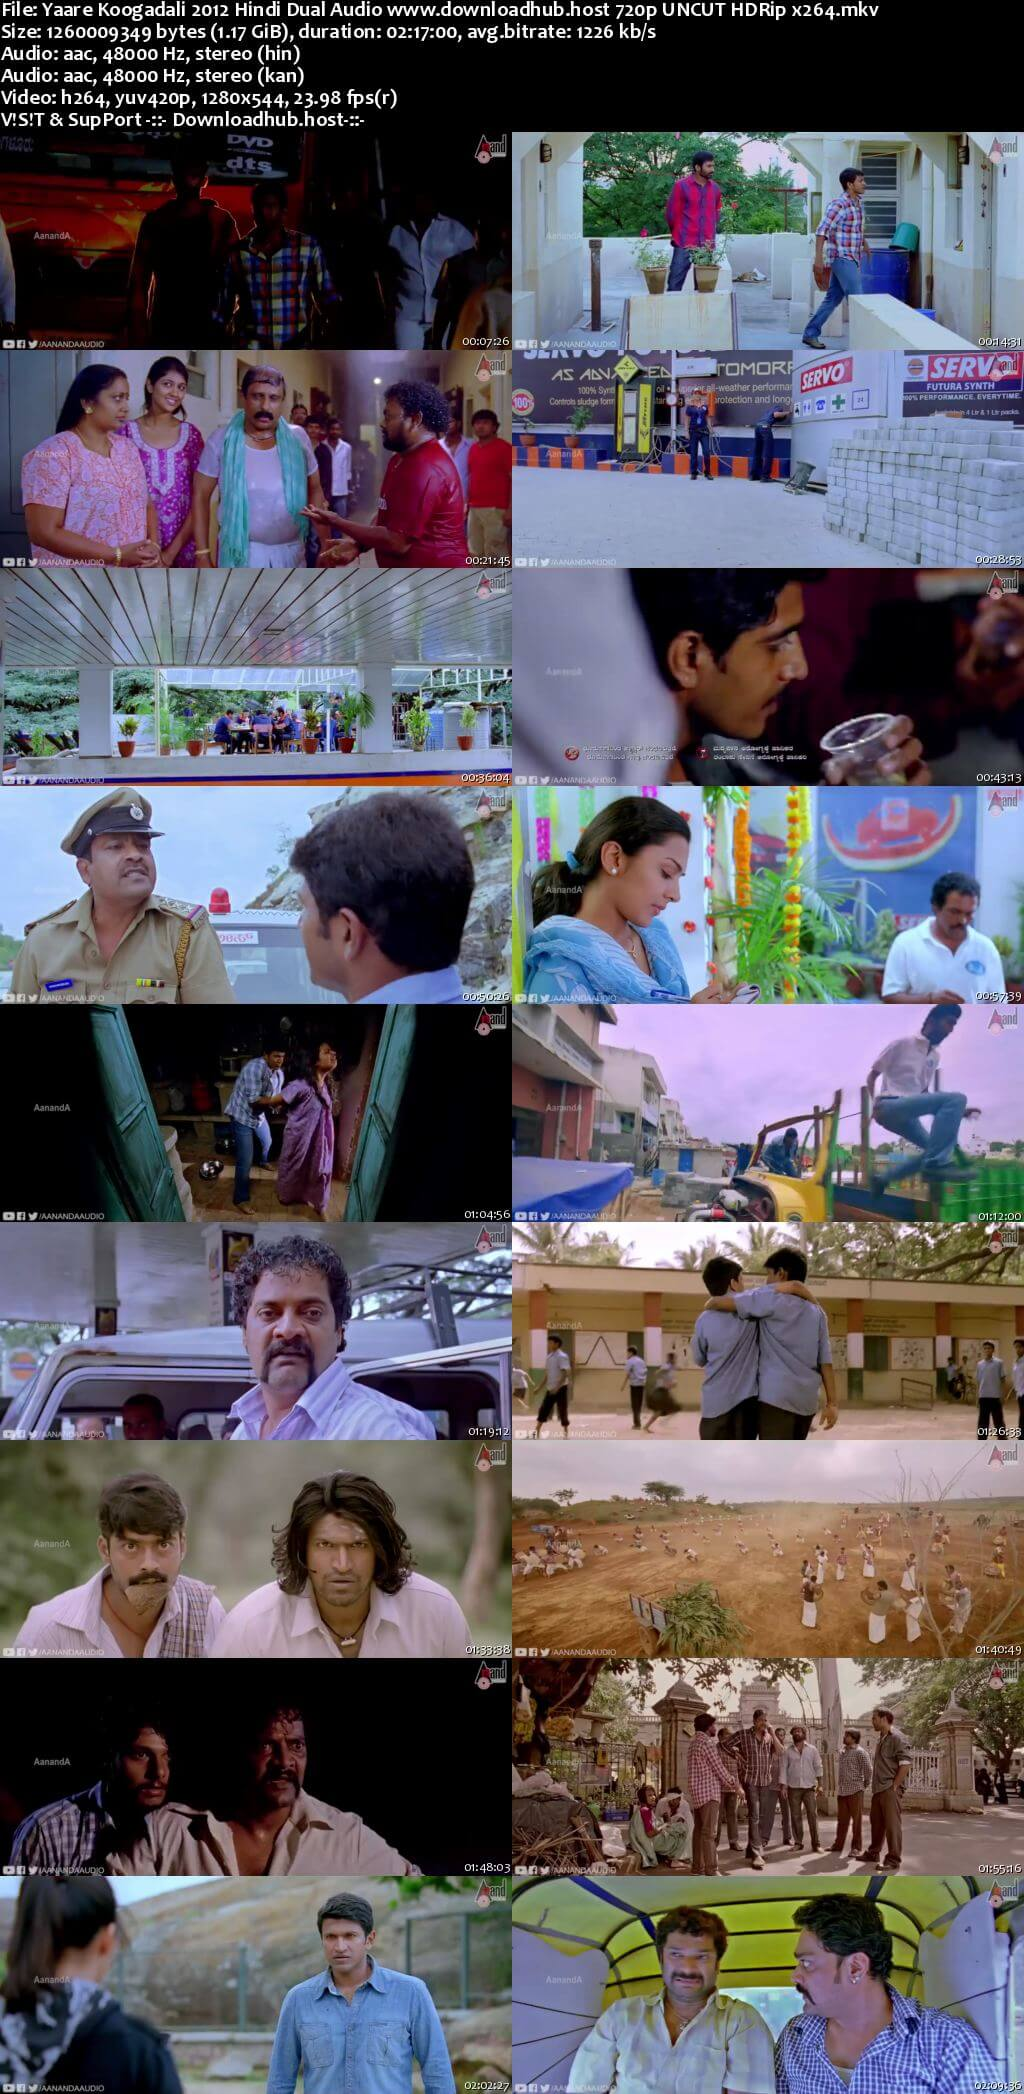 Yaare Koogadali 2012 Hindi Dual Audio 720p UNCUT HDRip x264